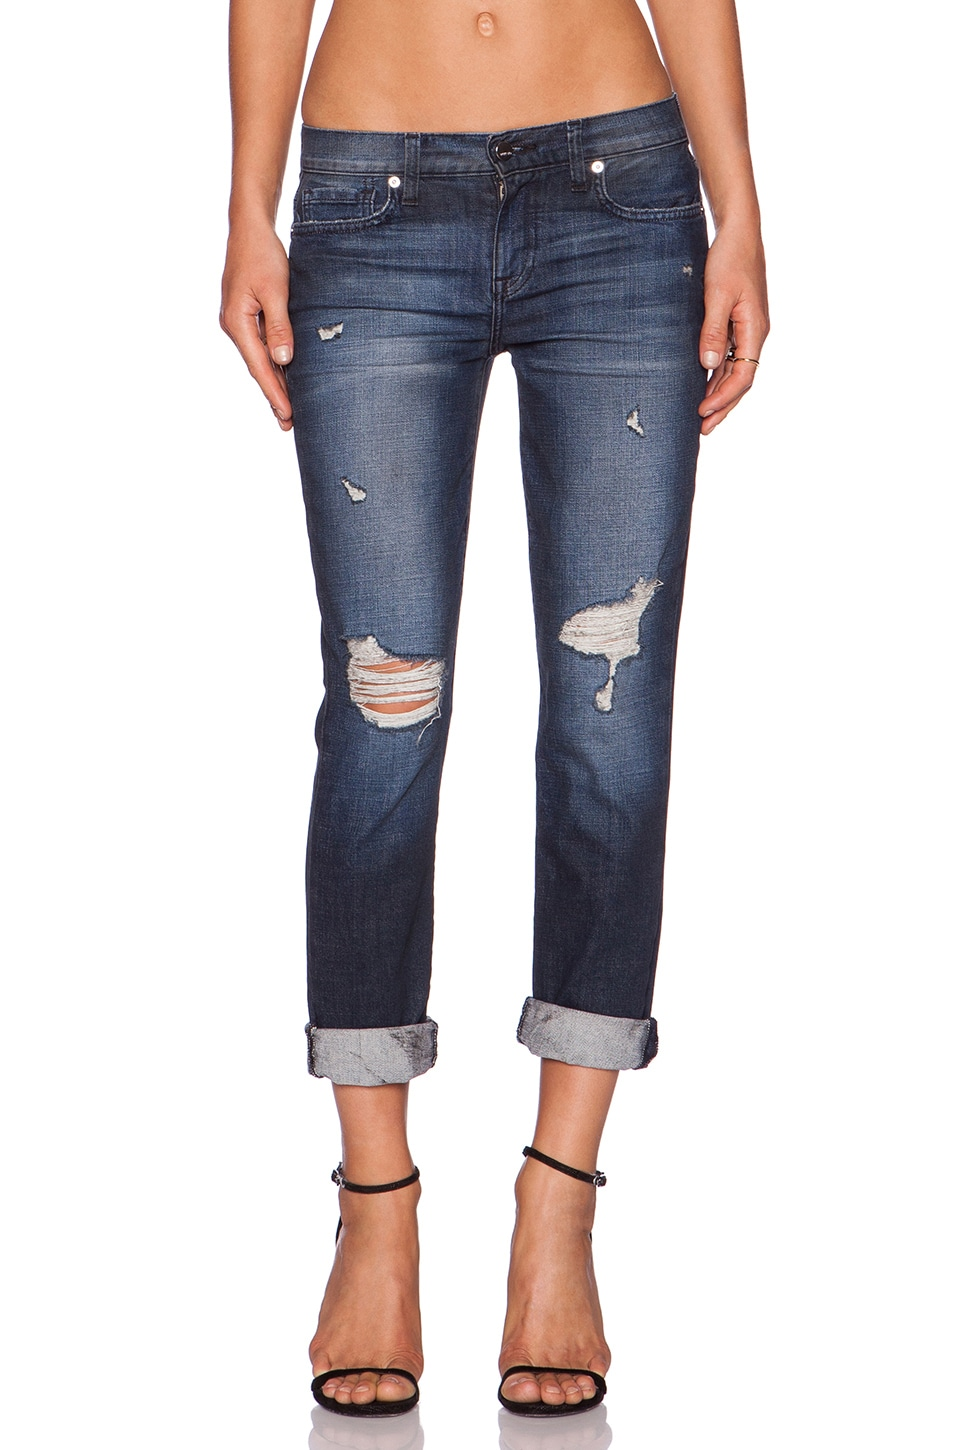 GENETIC LOS ANGELES Genetic Denim Alexa Slim Boyfriend in Montage